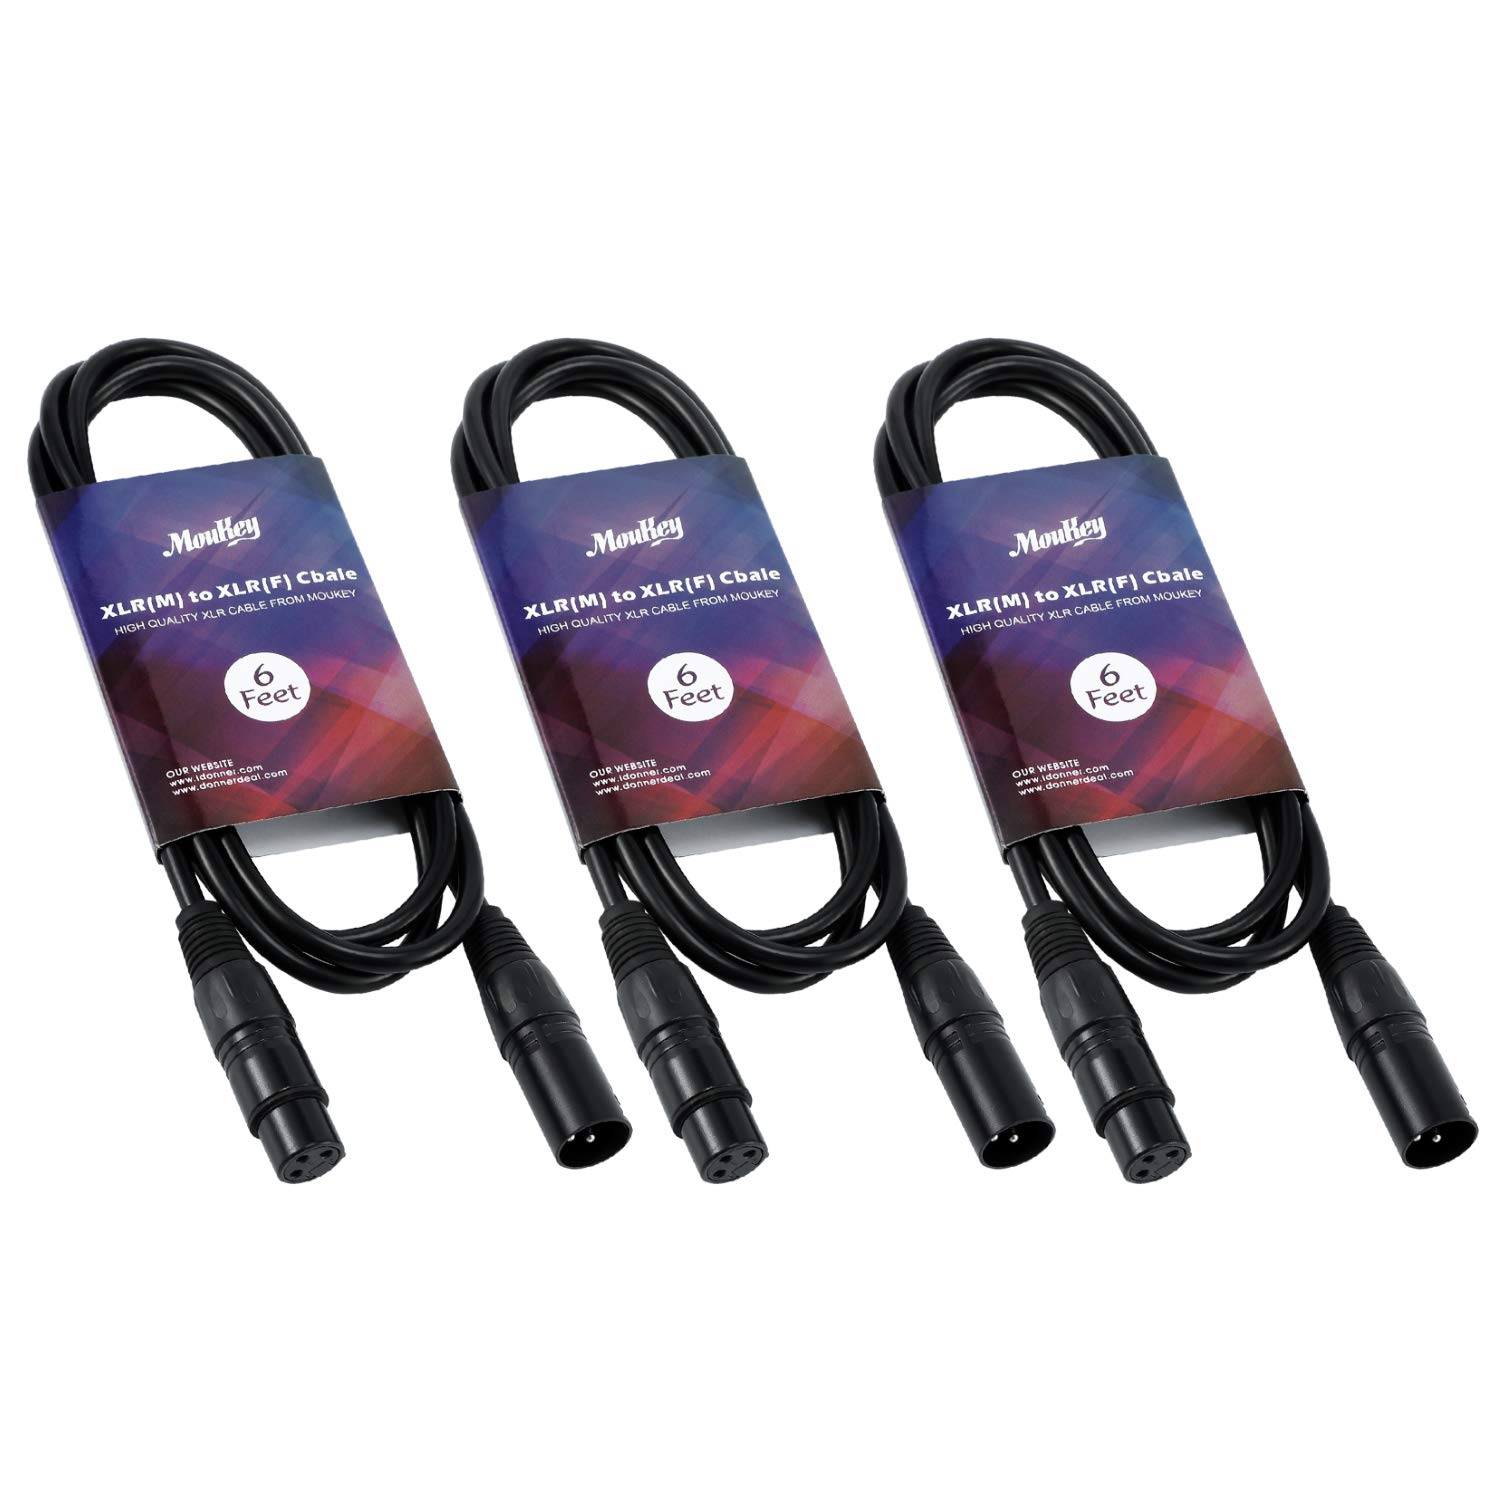 Moukey 6 Feet XLR Cable Male to Female Cord 6ft Microphone Cables 3-Pack for Audio Black